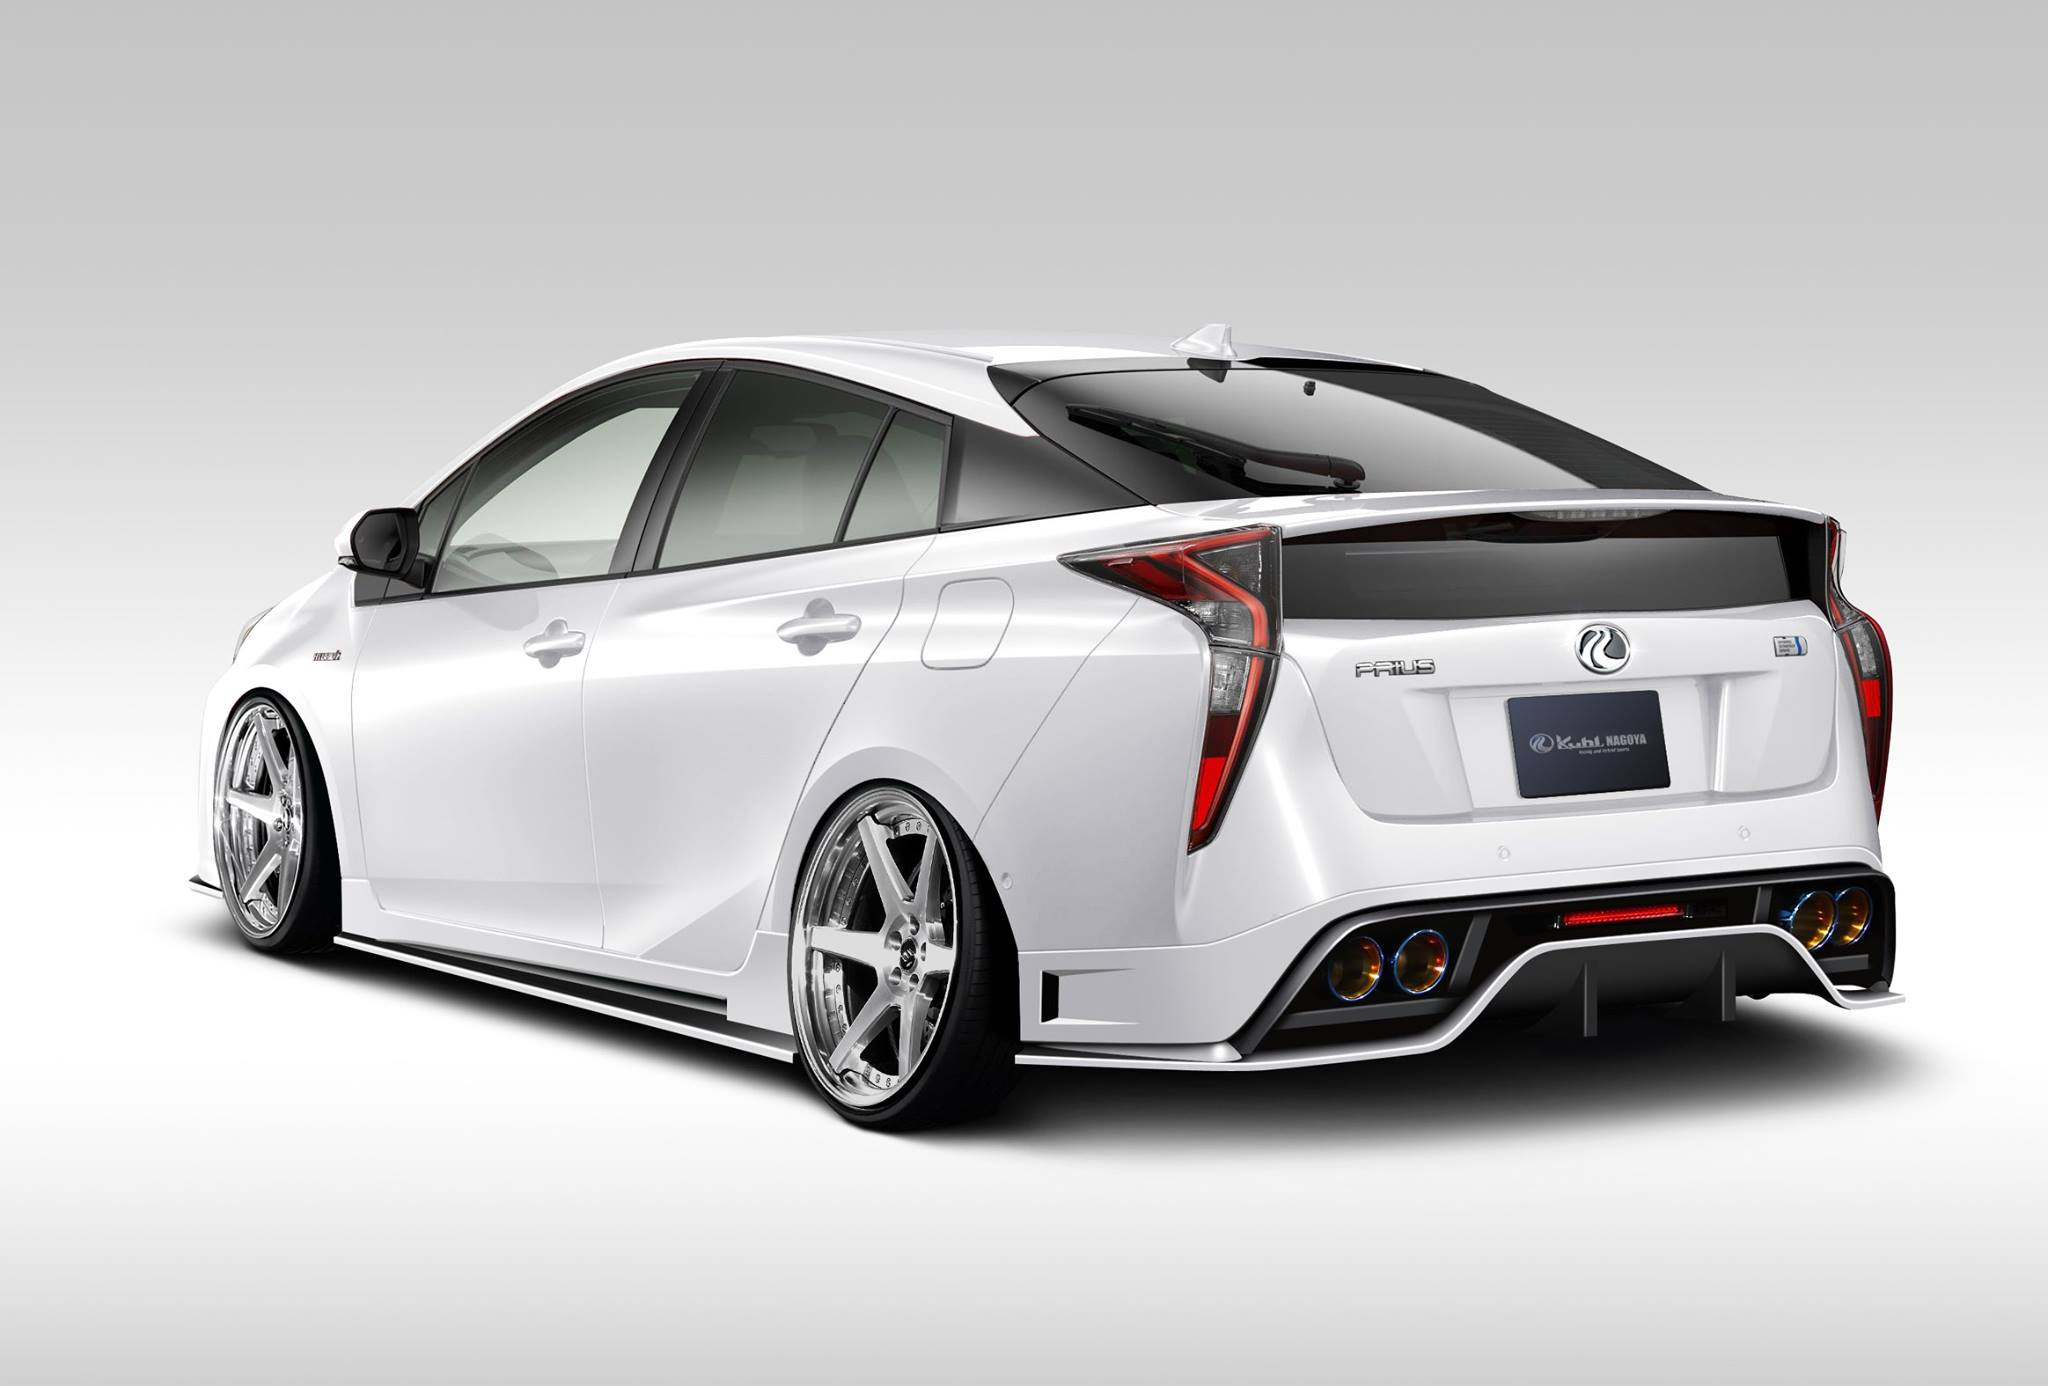 2016 toyota prius getting hellaflush body kit from kuhl racing autoevolution. Black Bedroom Furniture Sets. Home Design Ideas